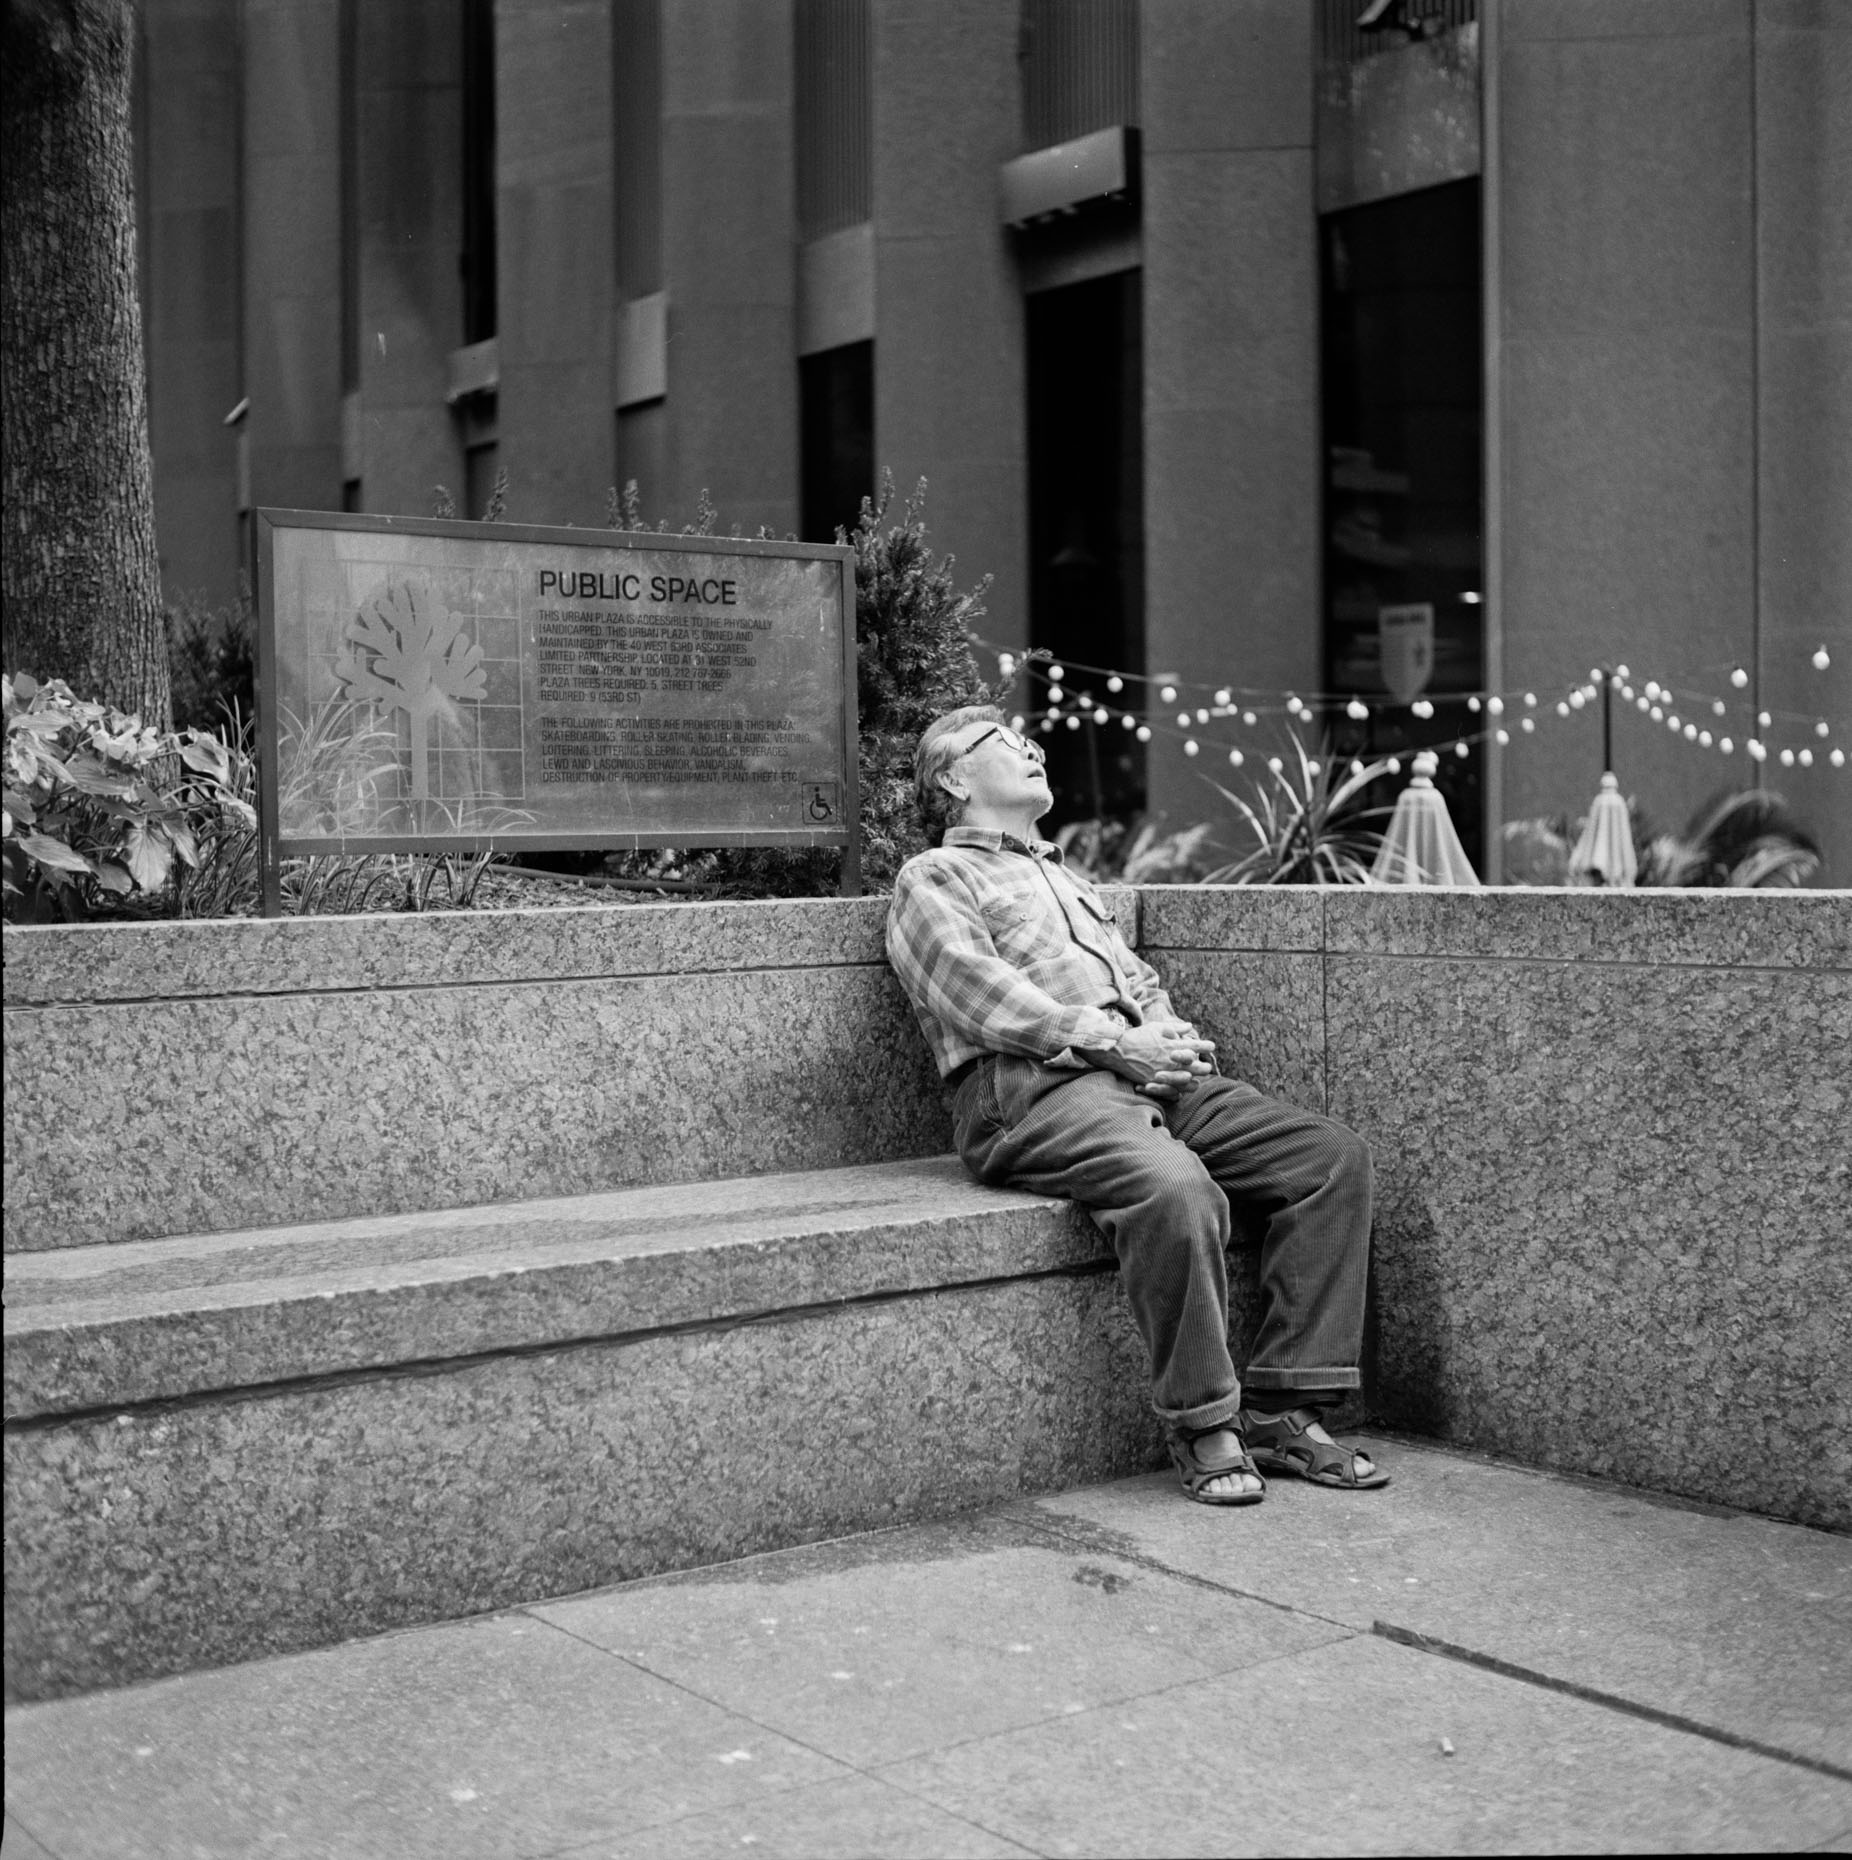 A man snoozes in Midtown Manhattan.